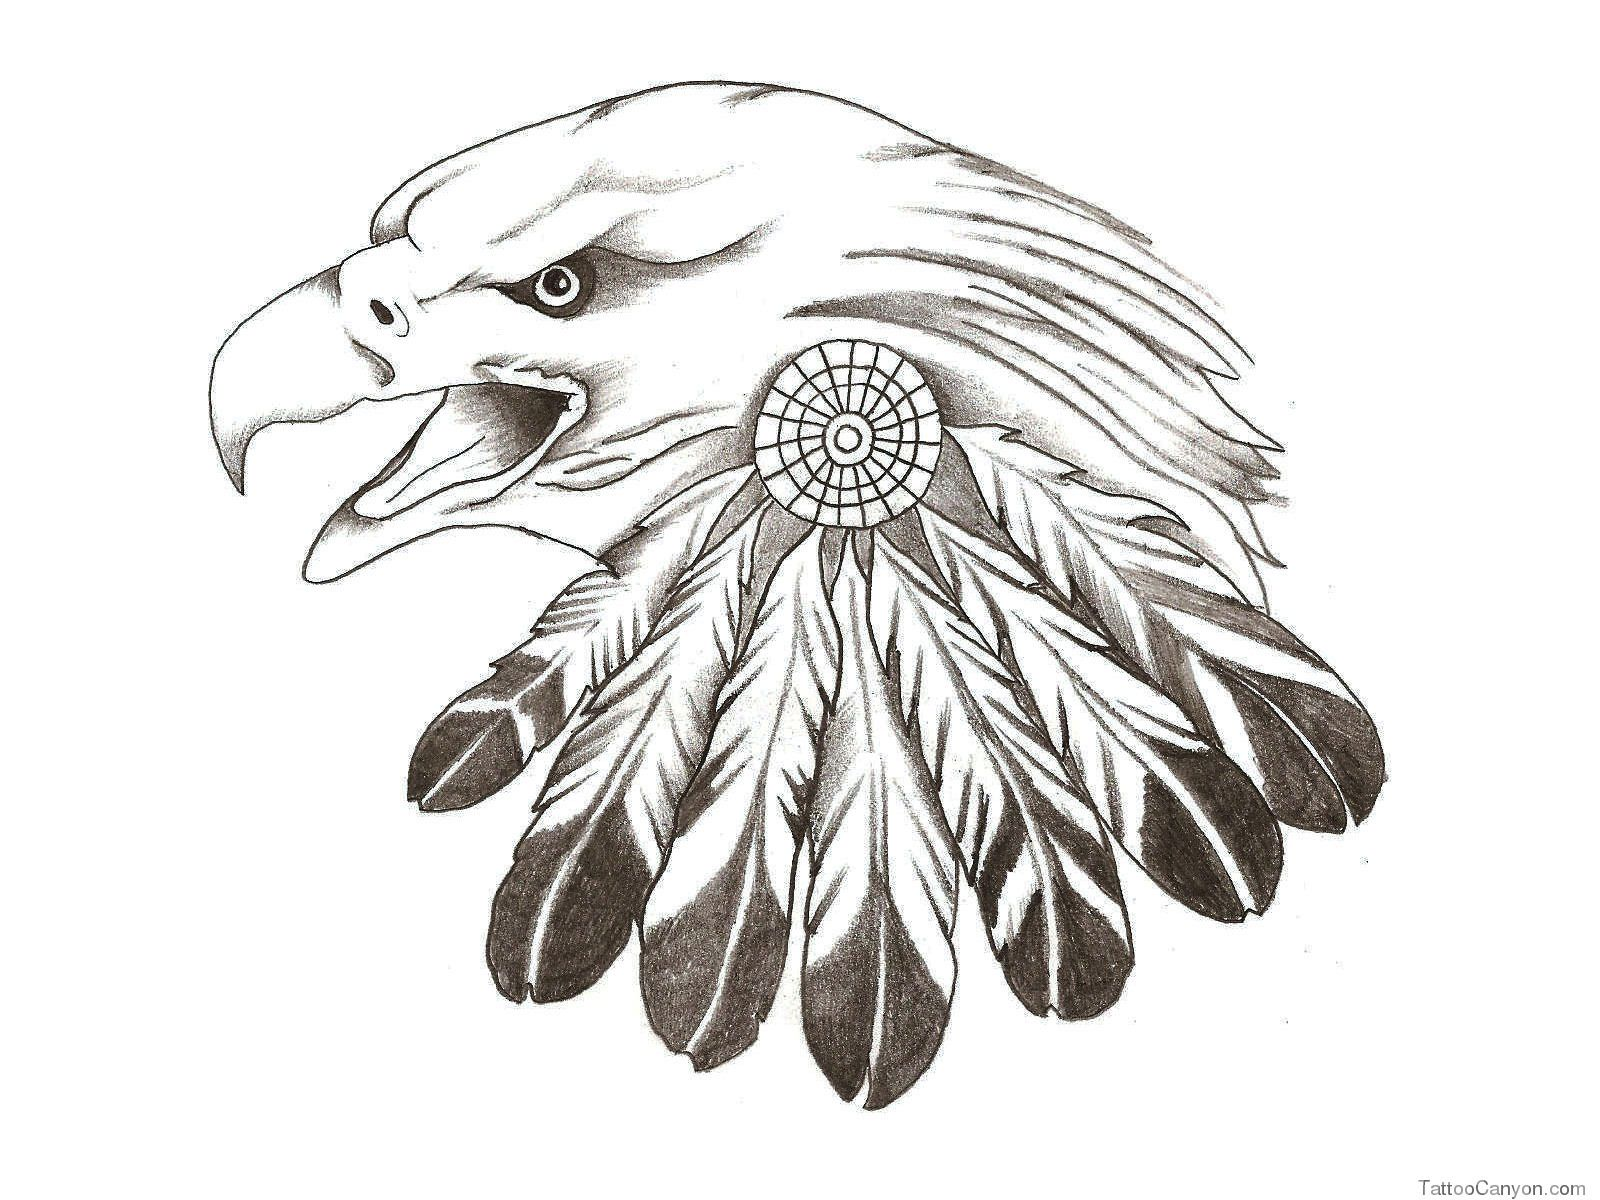 eagle tattoo designs - Google Search | woodburning pics | Pinterest ...